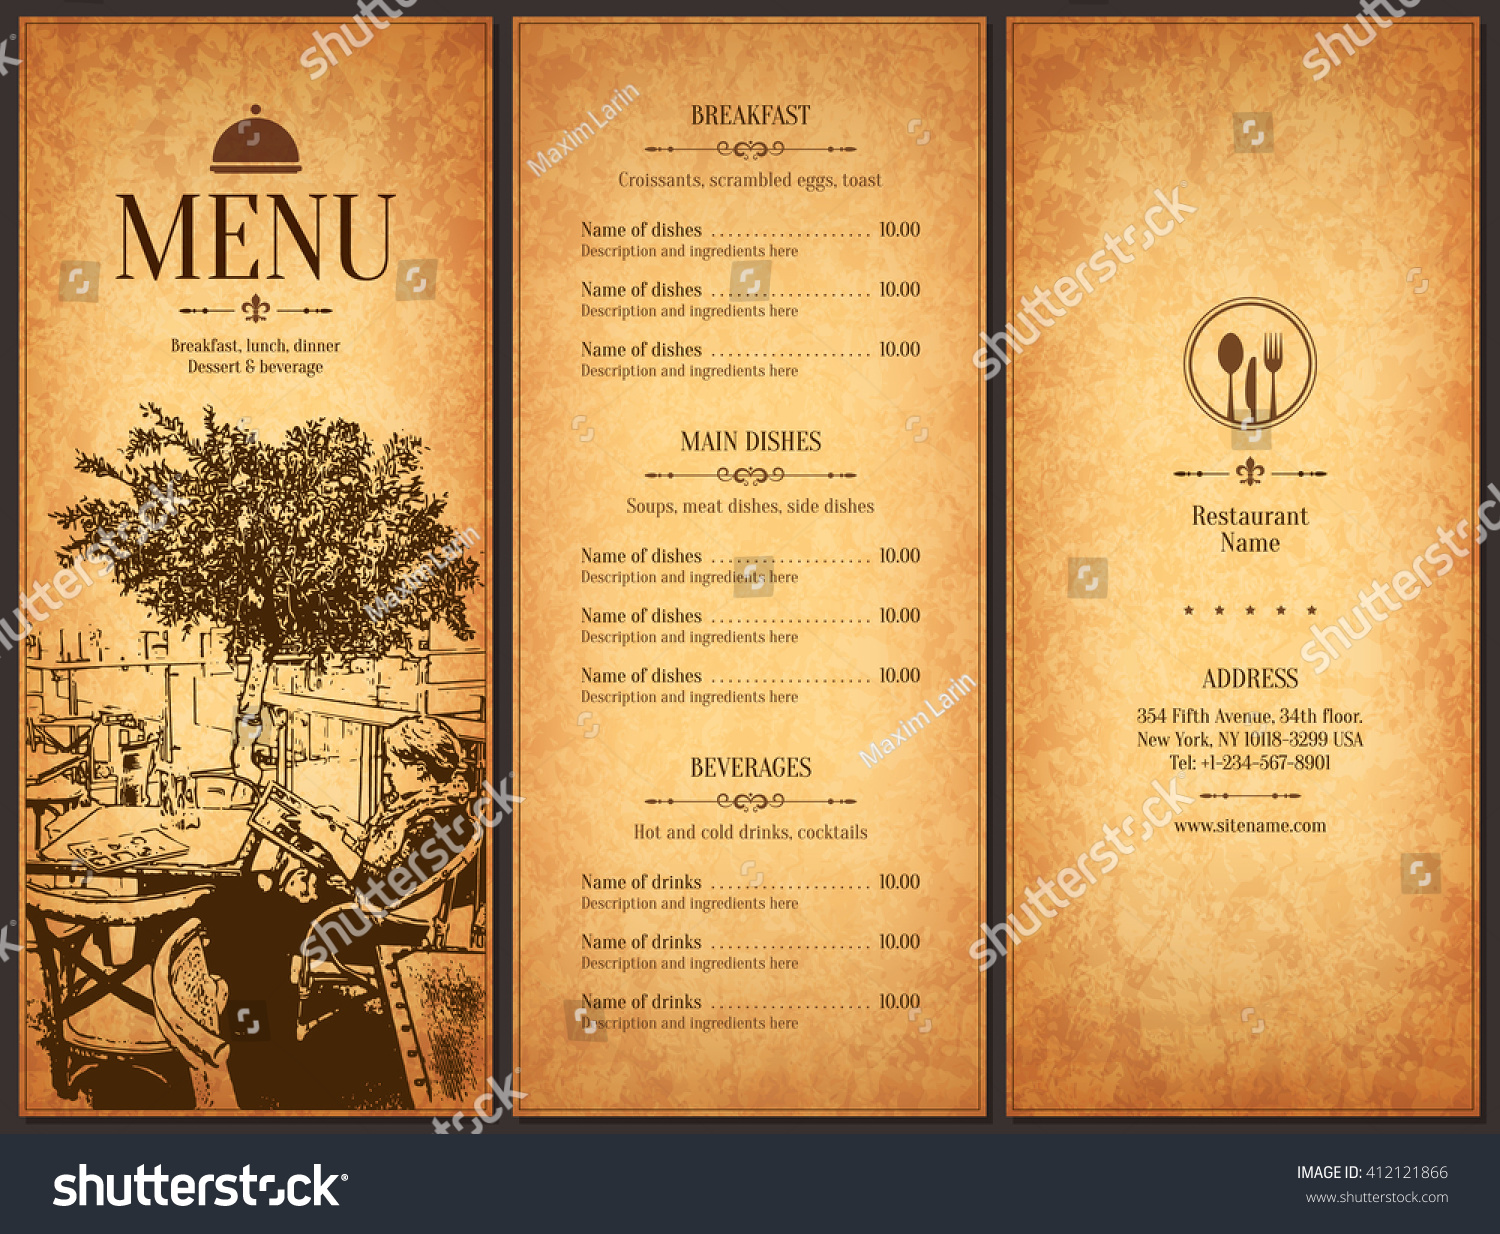 restaurant menu design vector menu brochure template for cafe vector menu brochure template for cafe coffee house restaurant